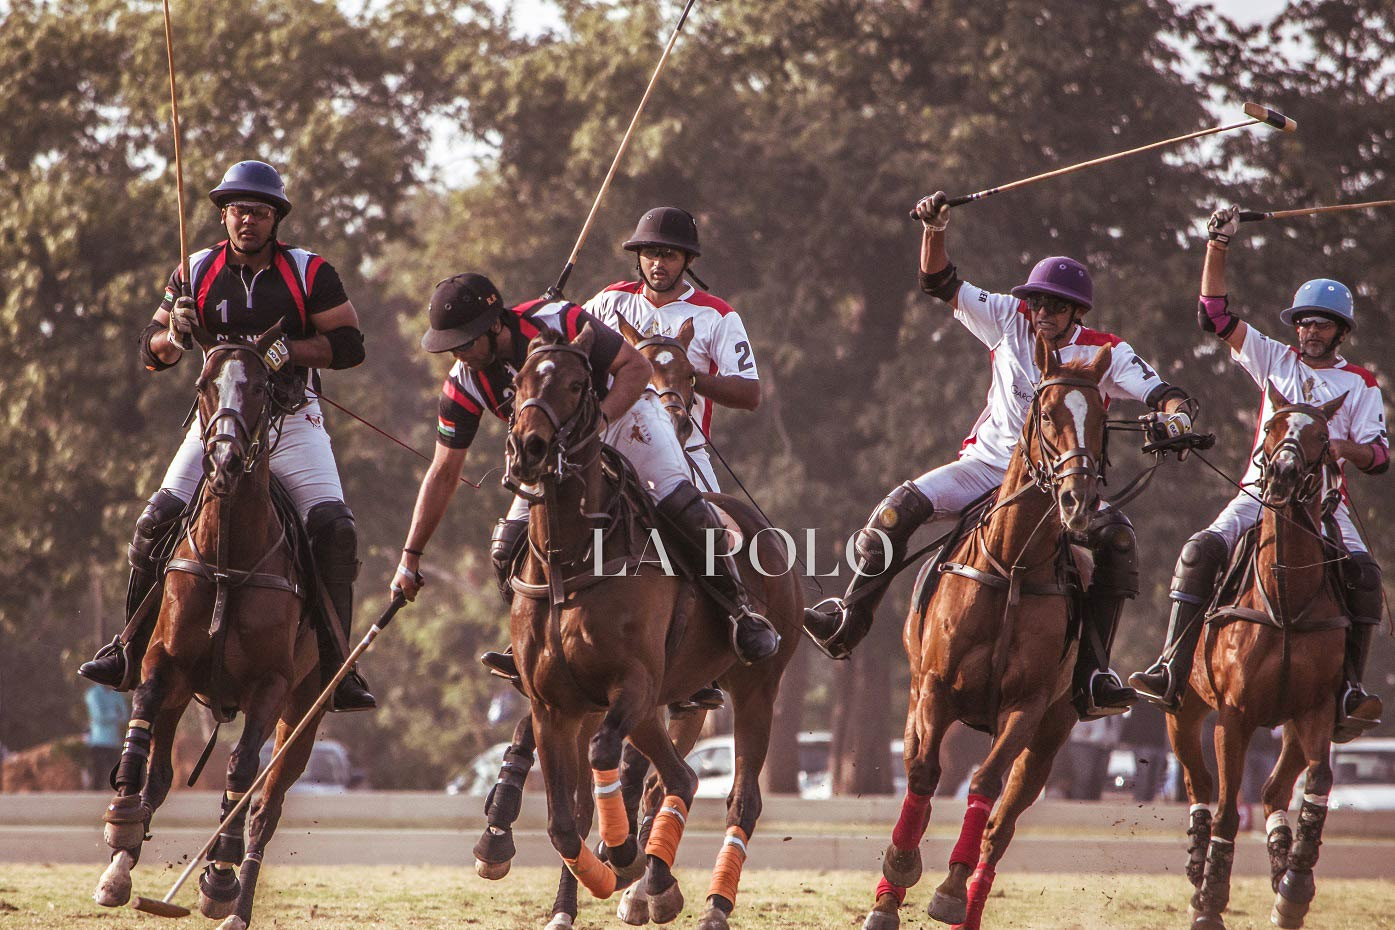 HH Maharaja Sawai Bhawani Singh Cup lands into its Second Day | Jaipur Season | January 2020